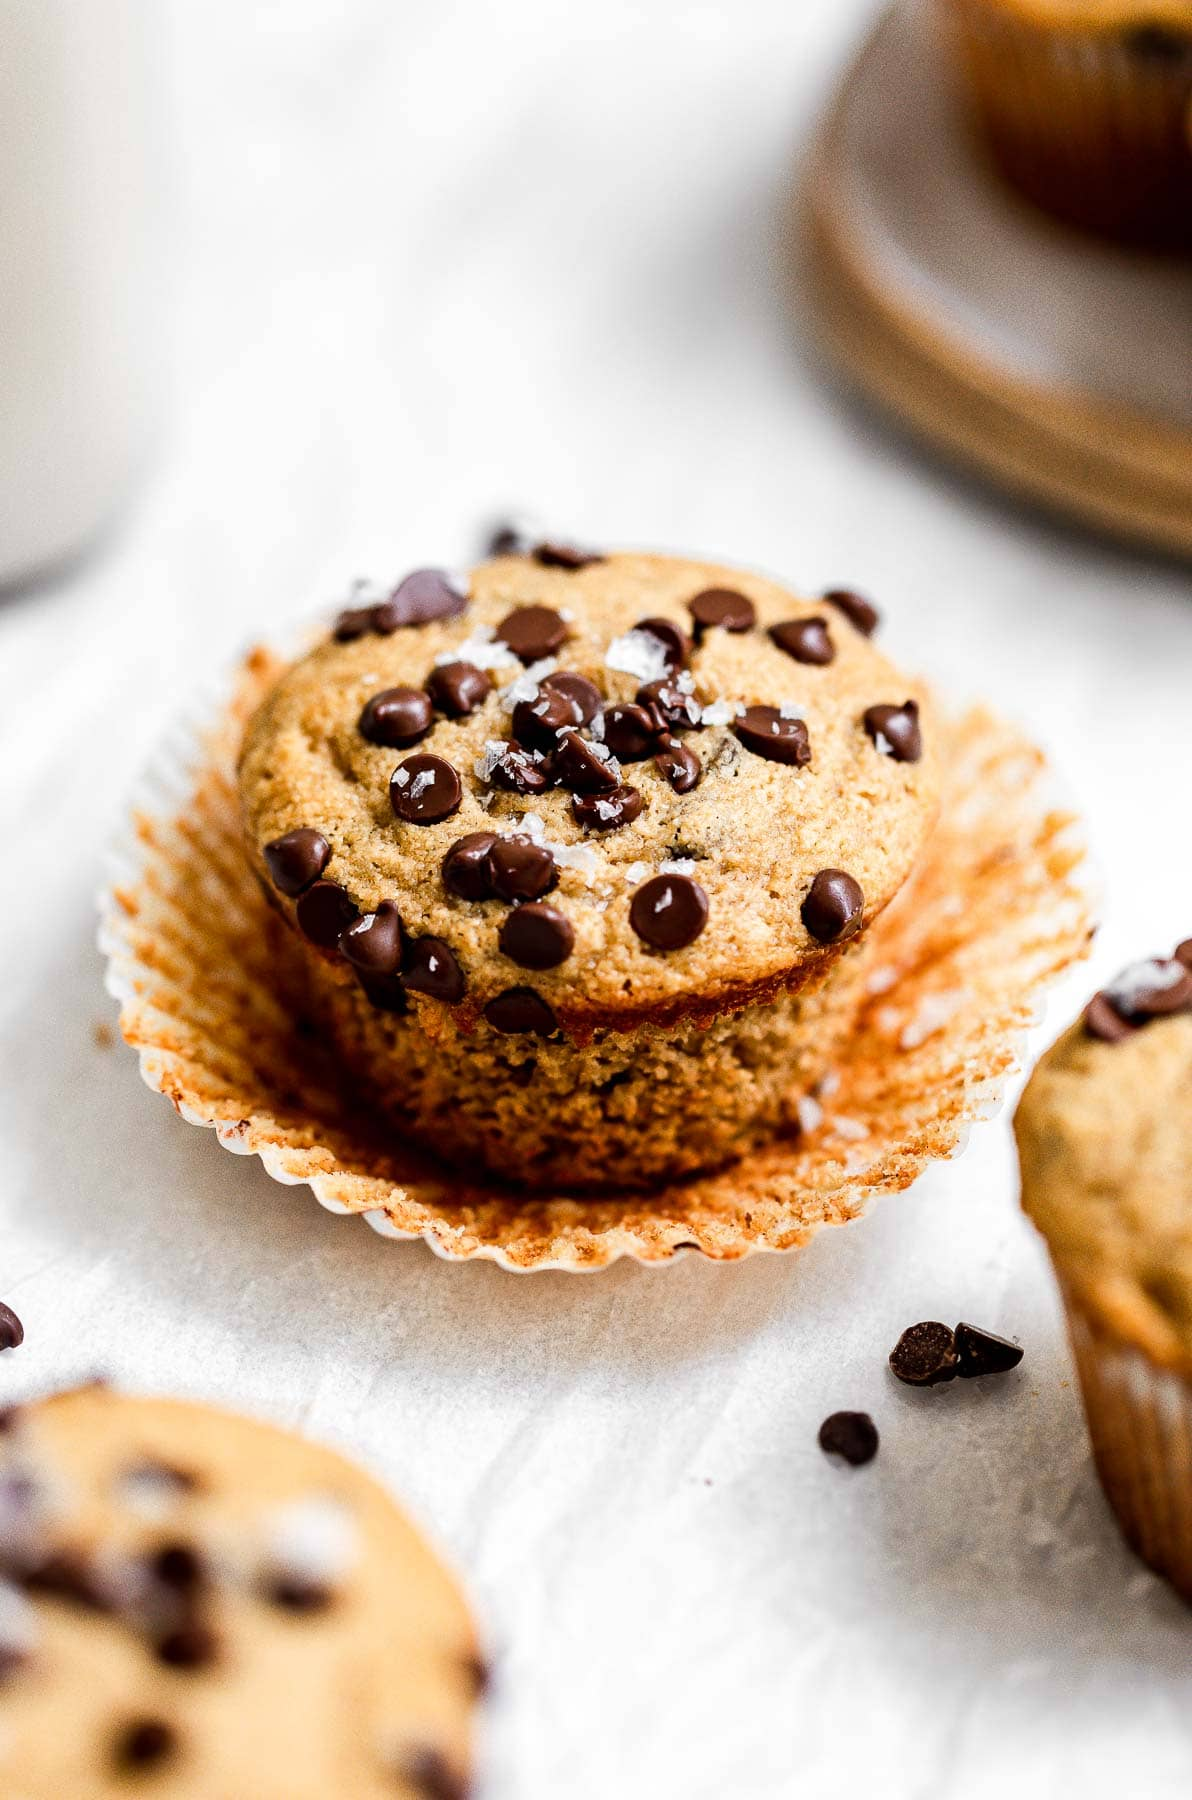 Banana muffin with chocolate chips on top and sea salt with the wrapper peeled off.